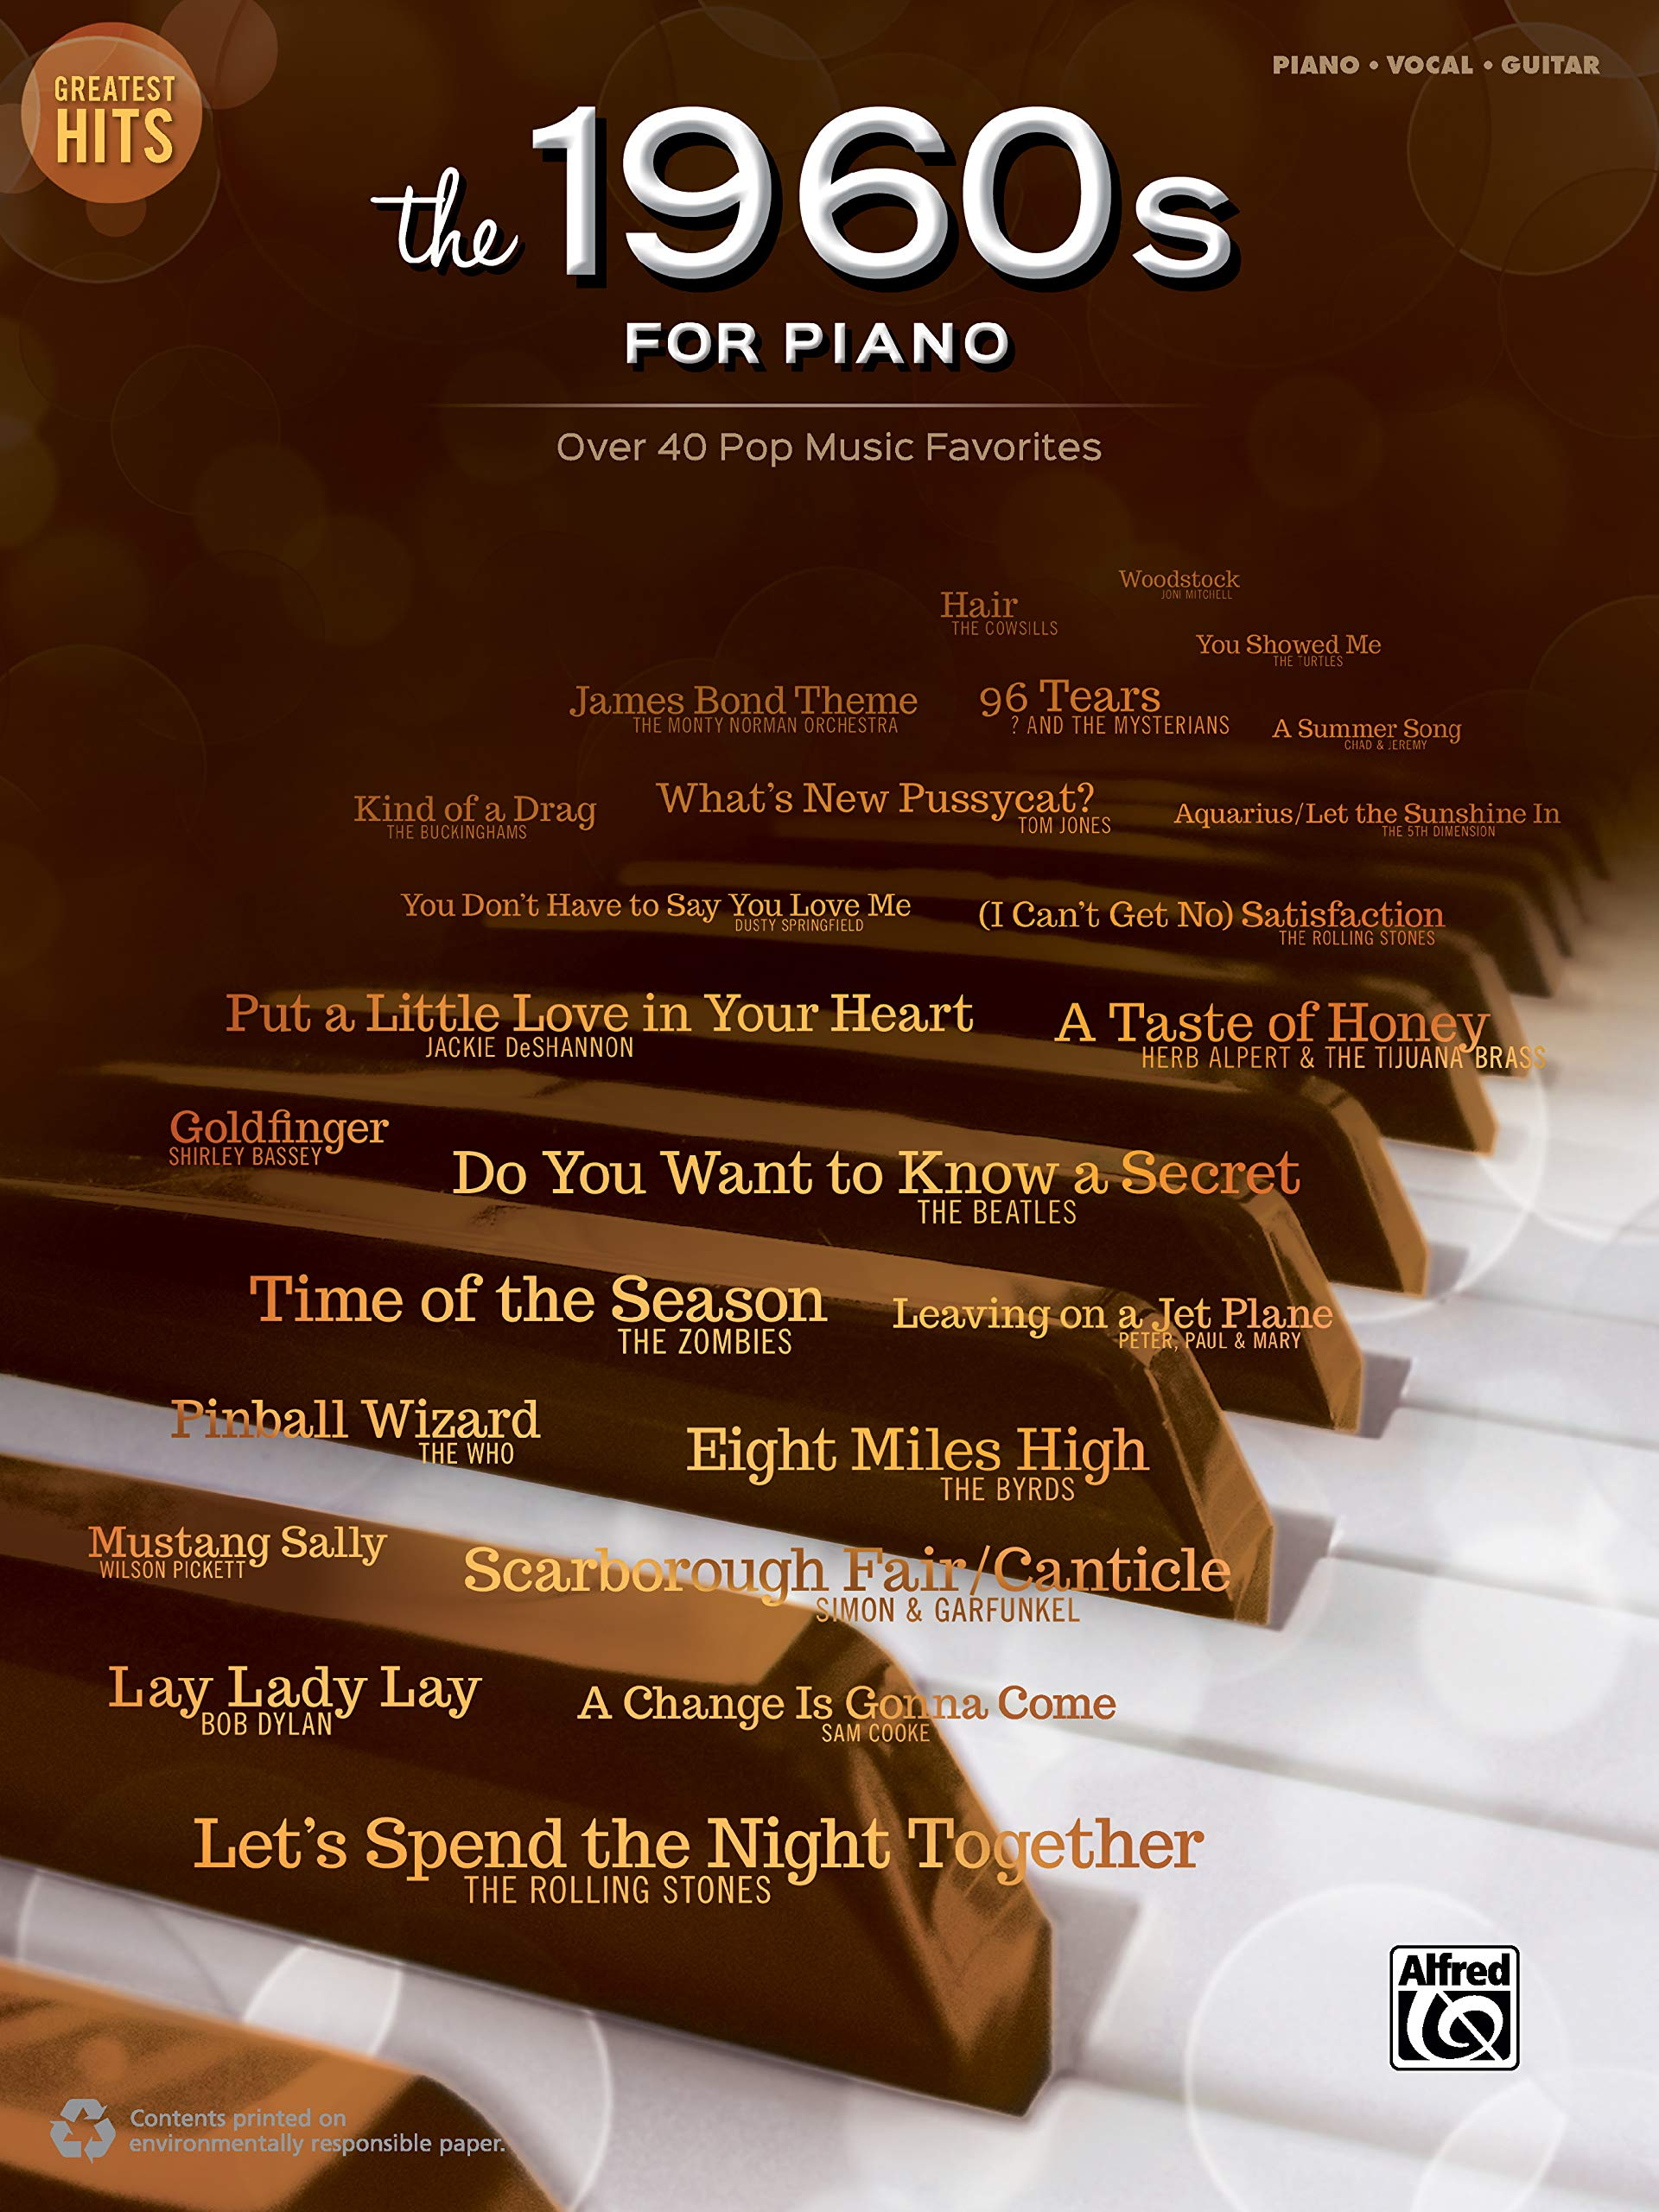 Greatest Hits -- The 1960s for Piano: Over 40 Pop Music Favorites by Alfred